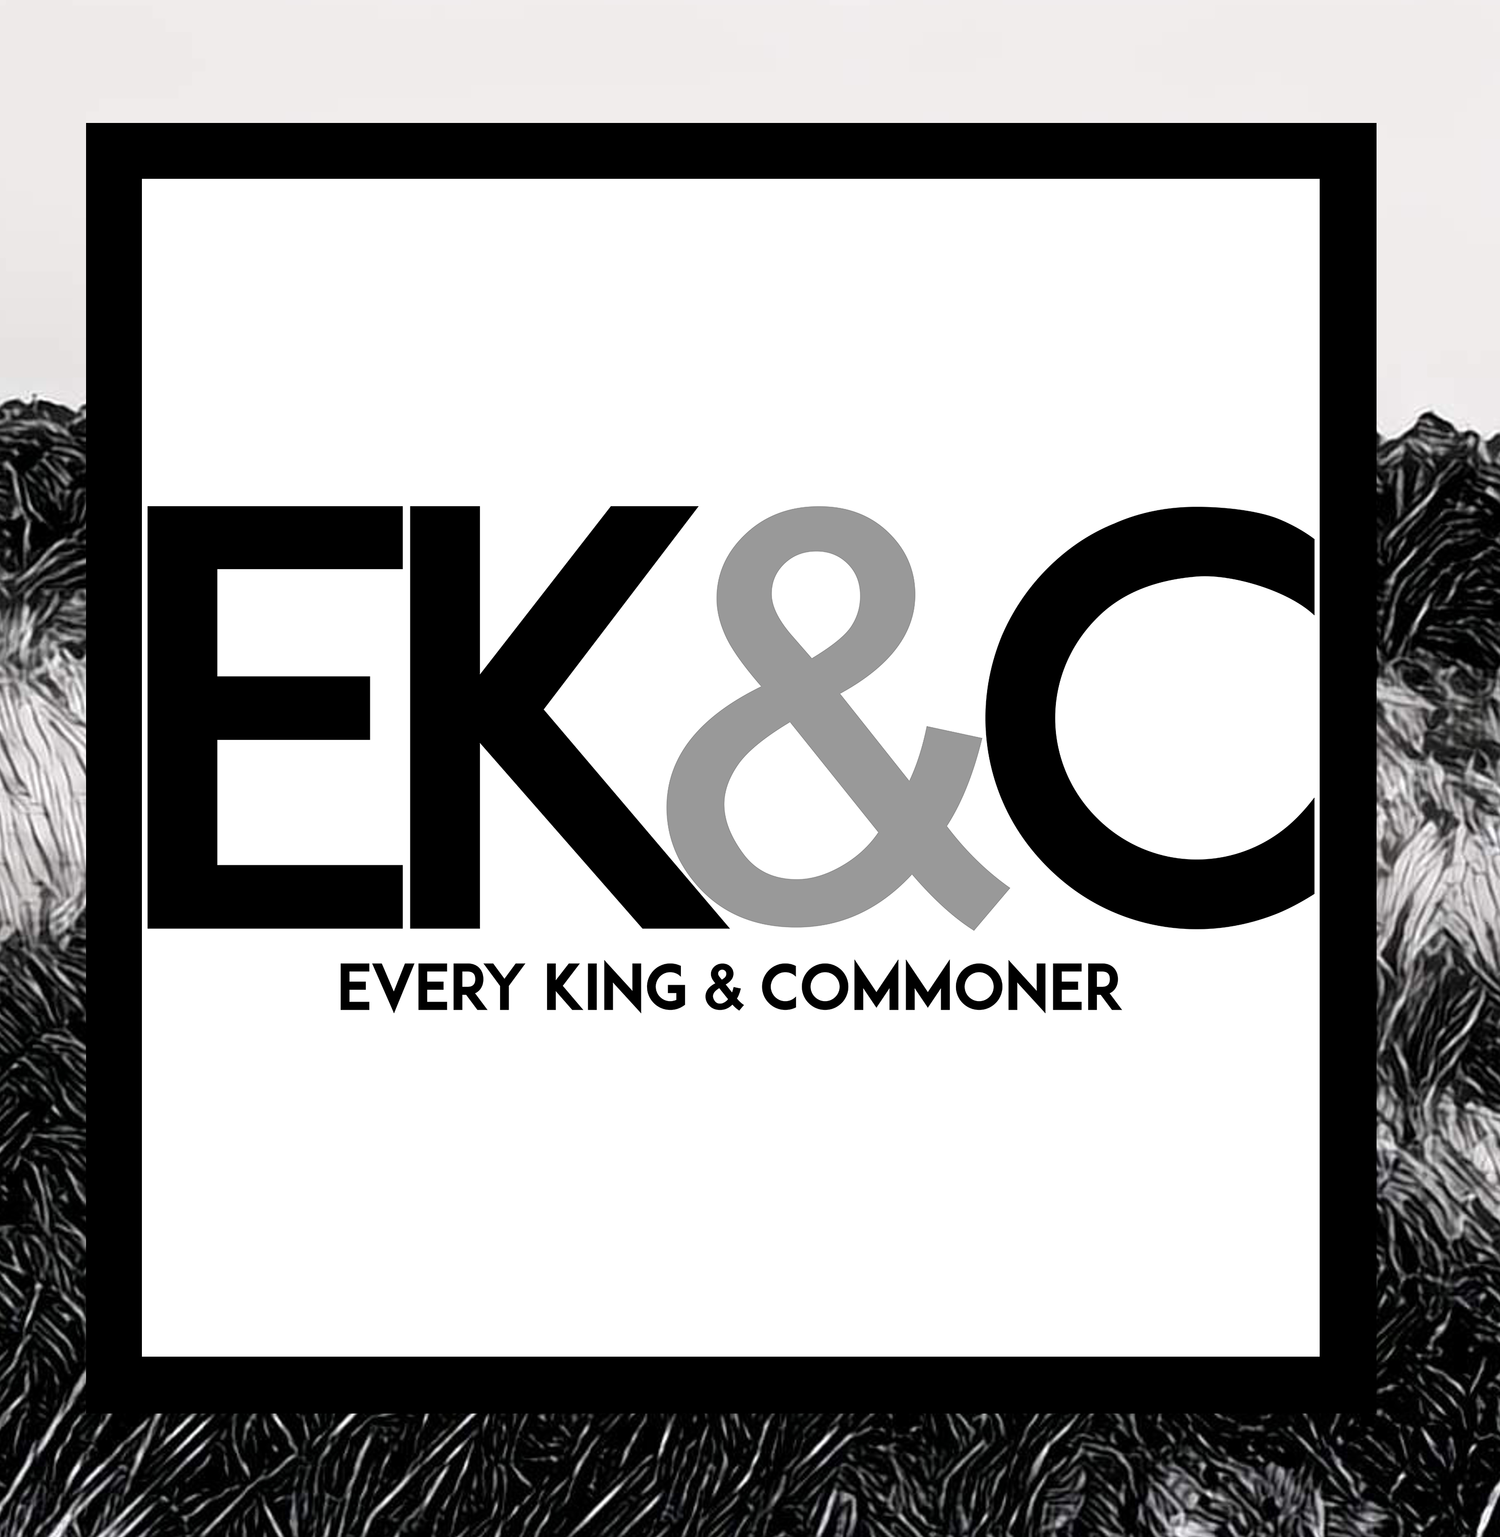 Every King & Commoner